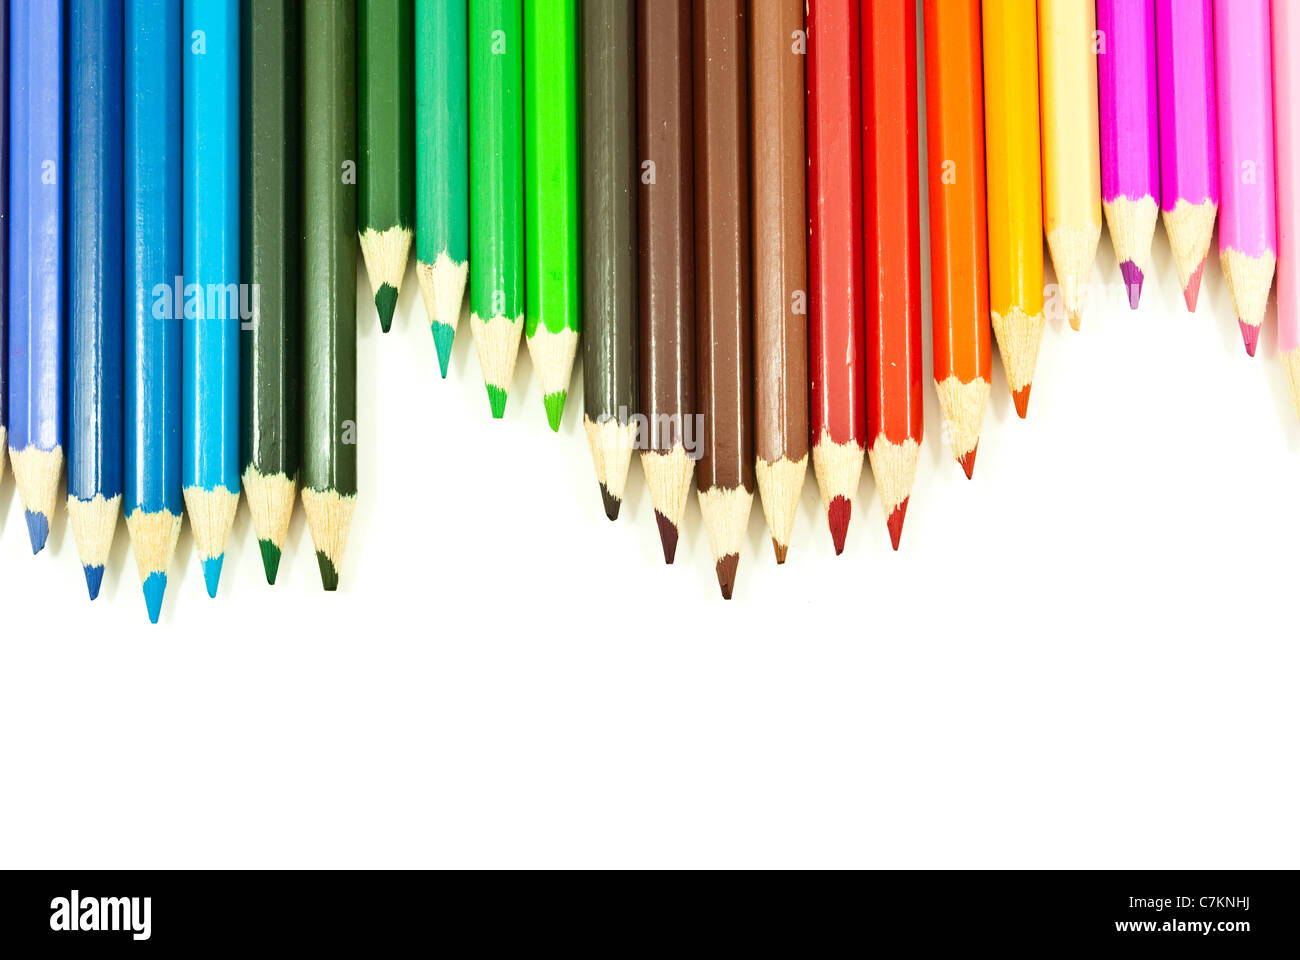 Colorful pencil texture background. Stock Photo